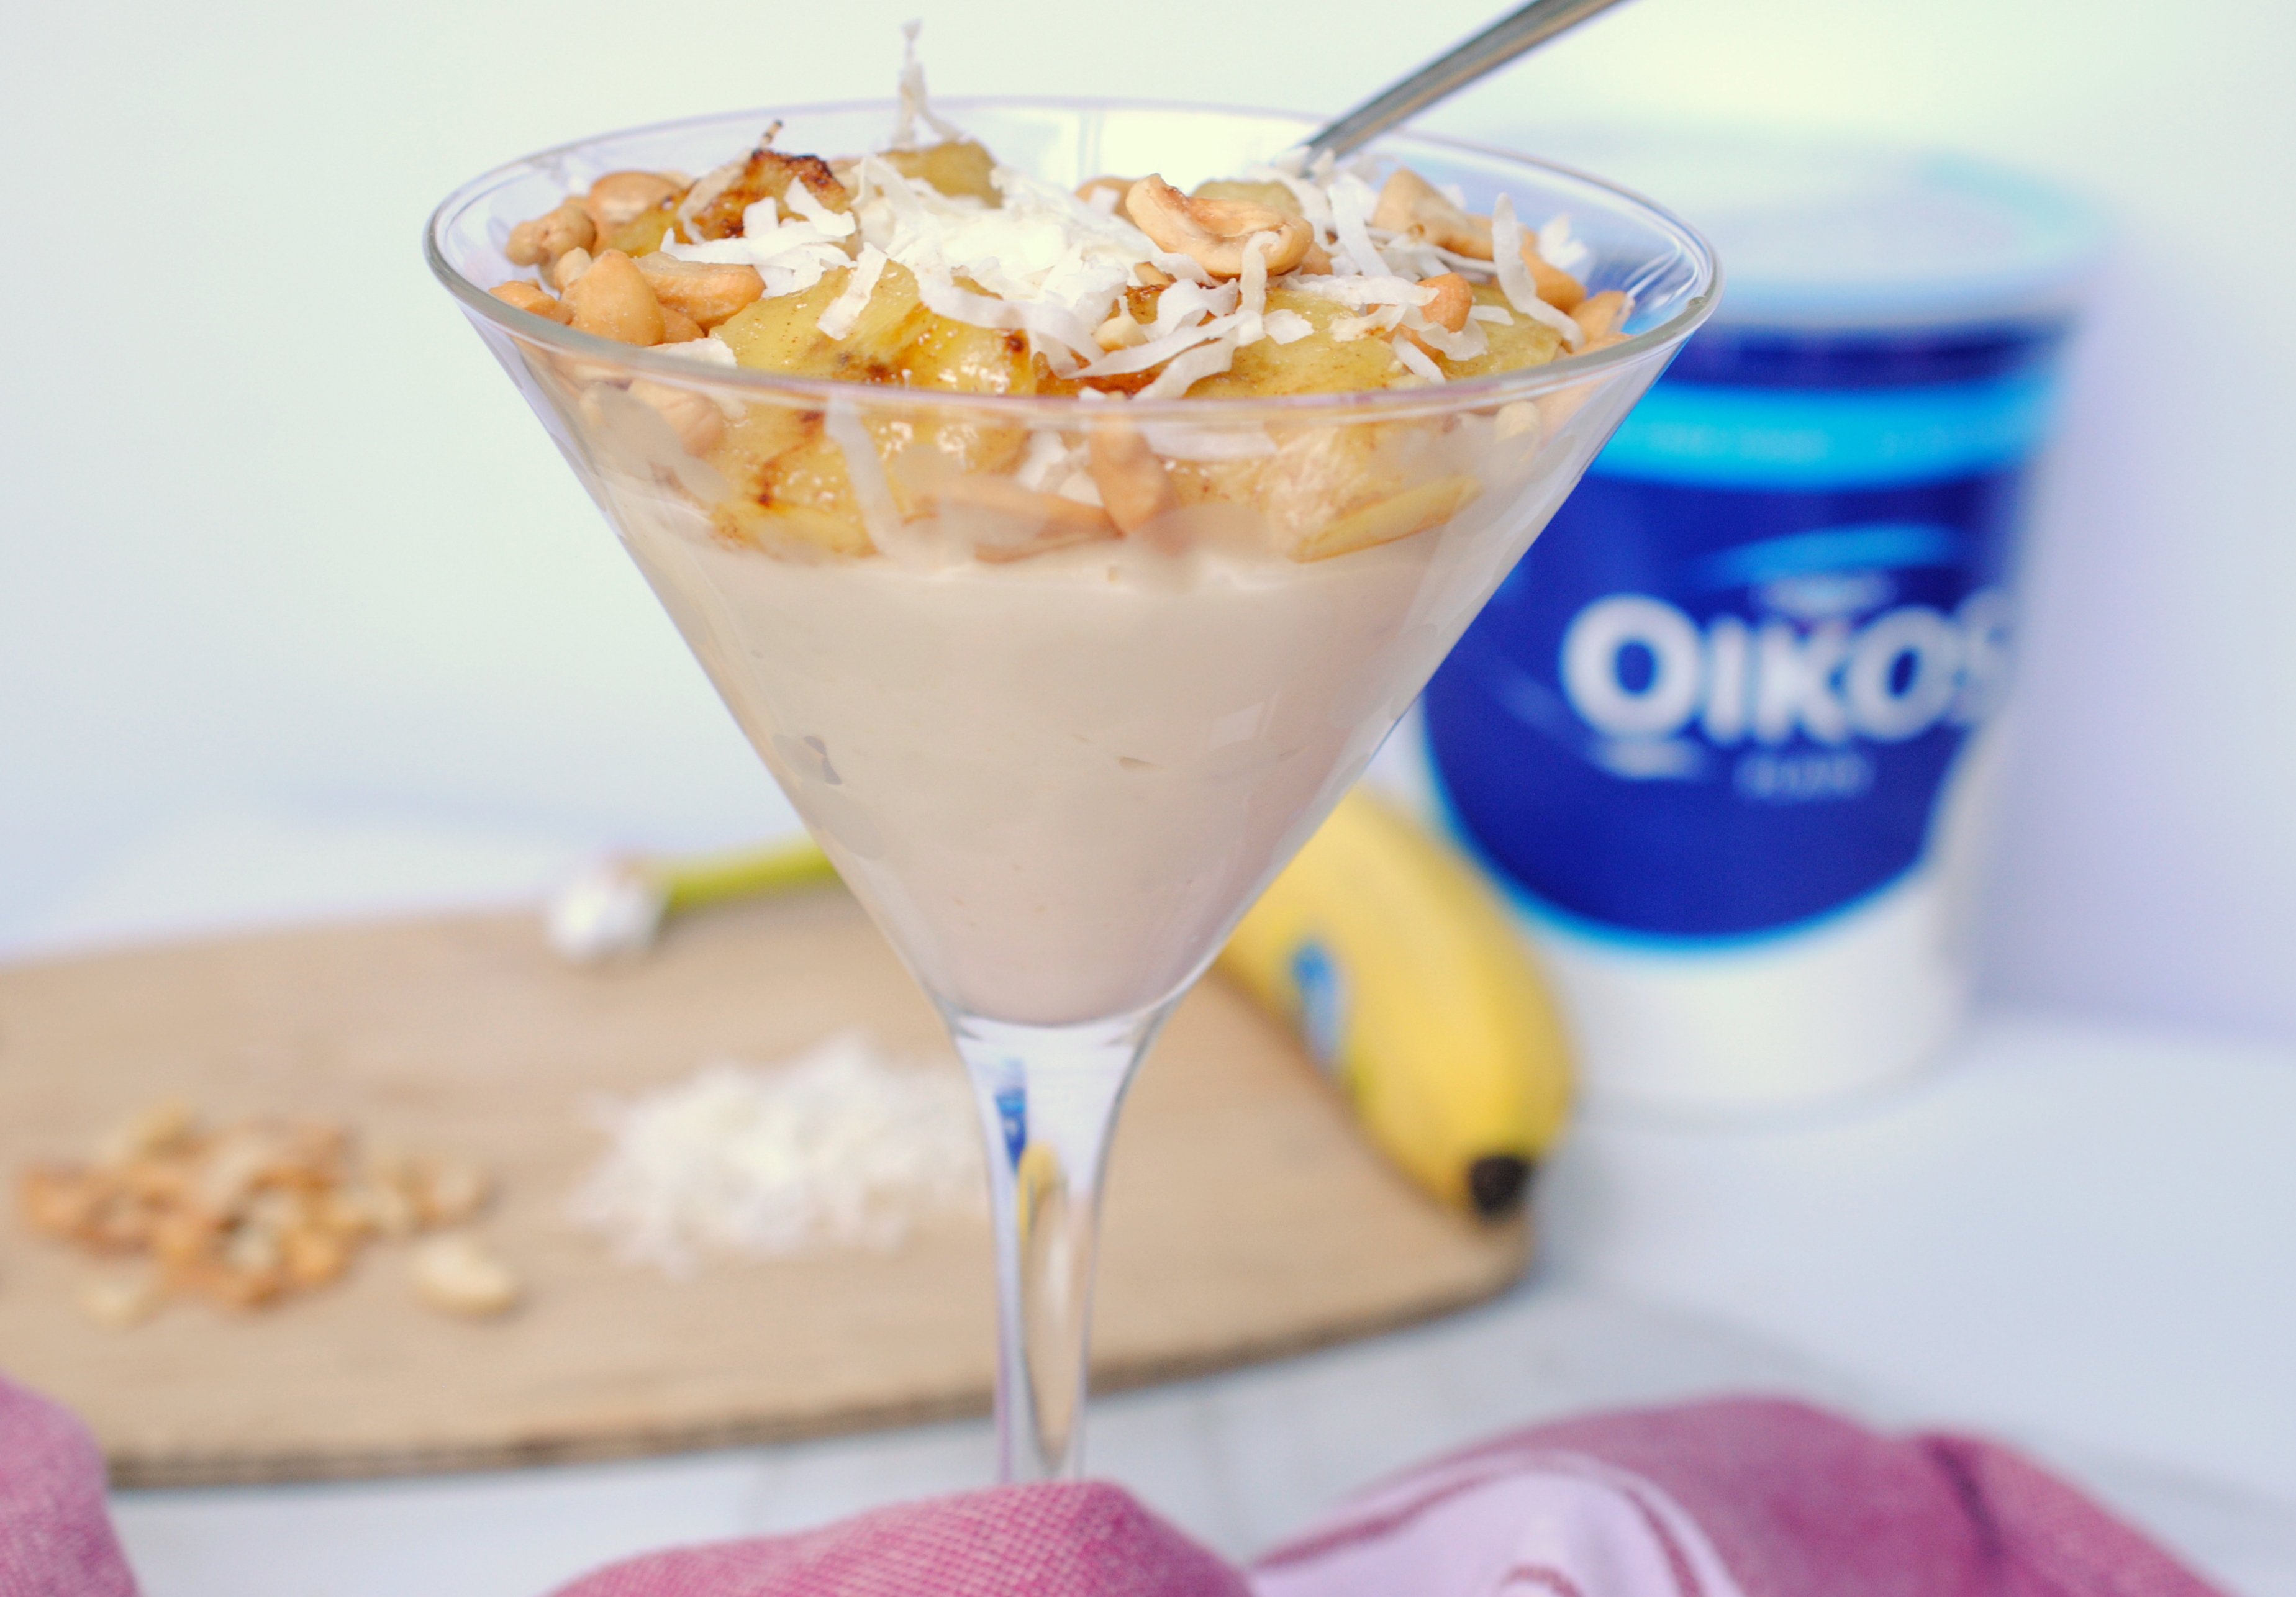 Banana coconut yogurt bowl